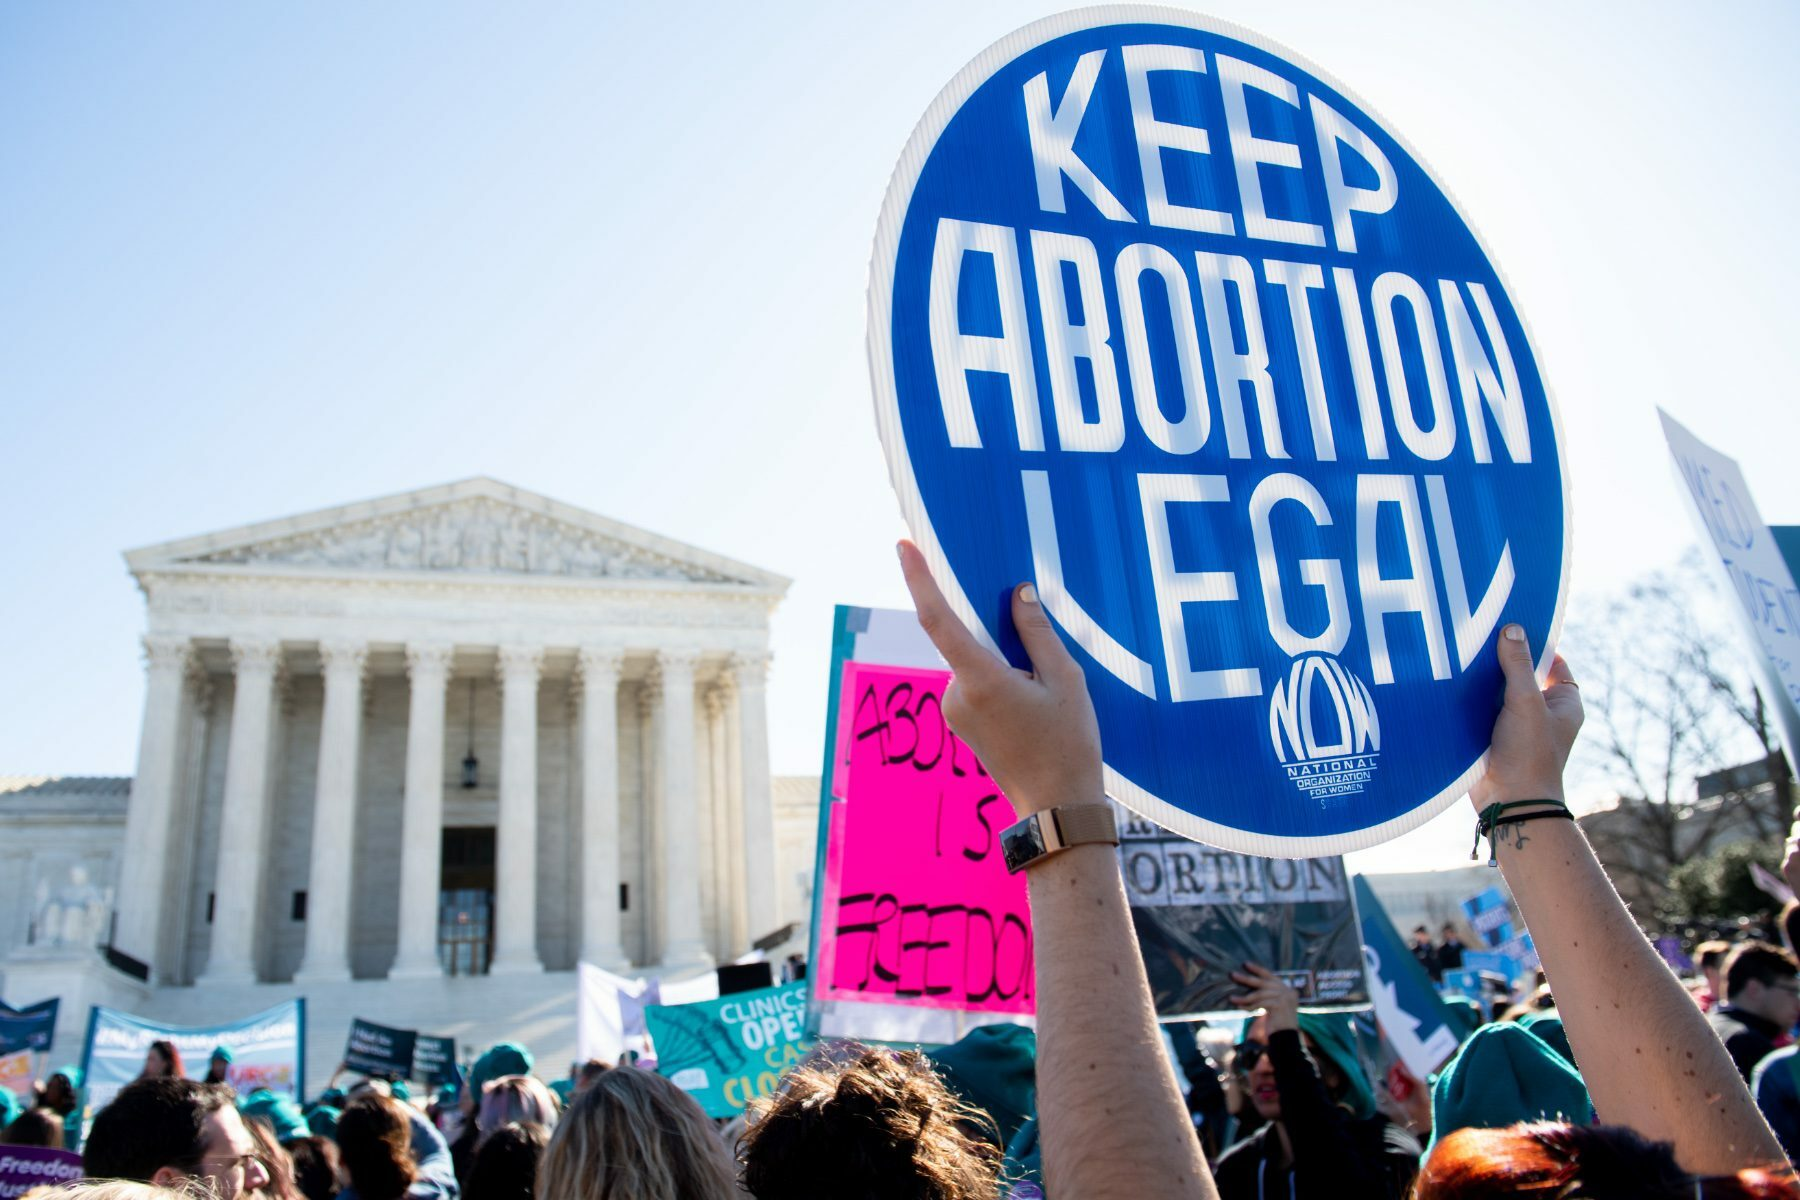 Pro-choice activists supporting legal access to abortion protest during a demonstration outside the US Supreme Court.